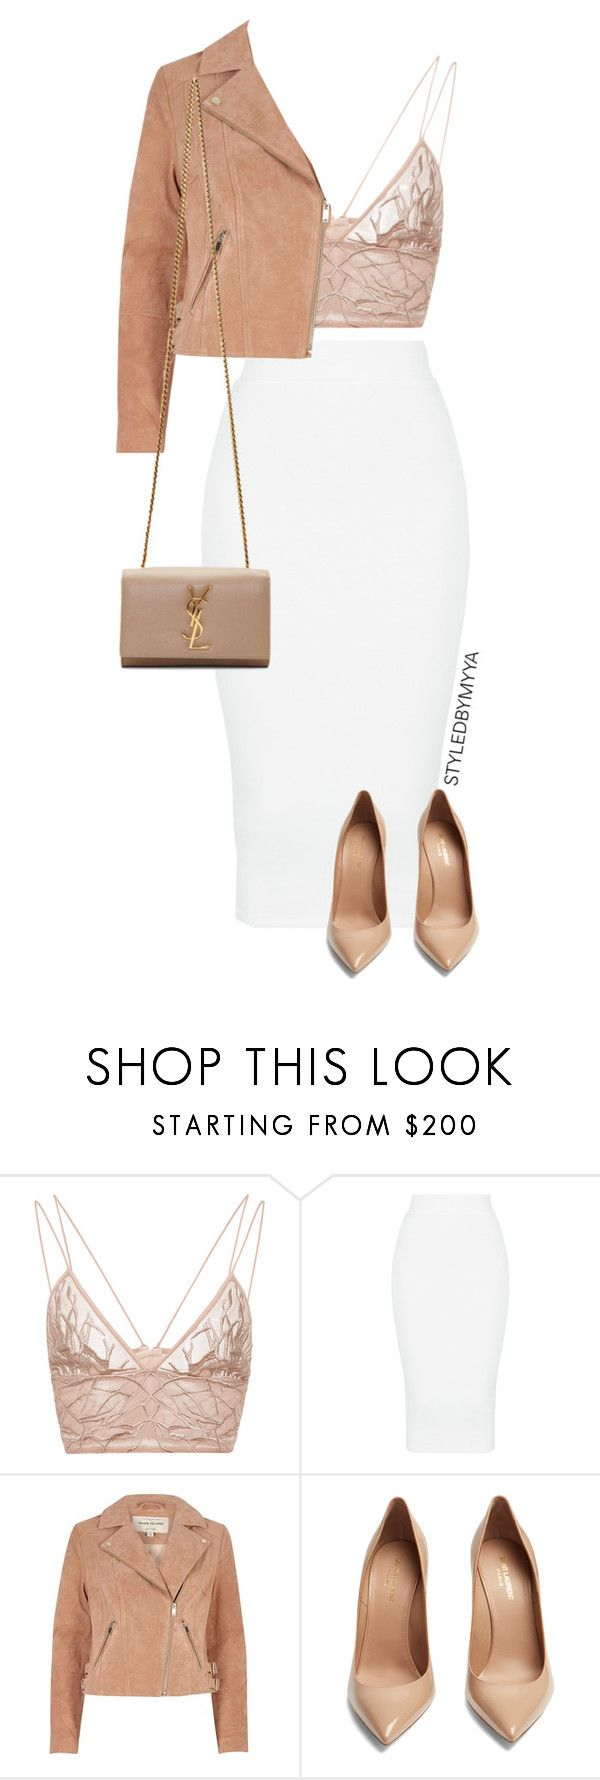 """""""BOUT' MY BUSINESS"""" by my-ya ❤ liked on Polyvore featuring Jonathan Simkhai, River Island and Yves Saint Laurent"""